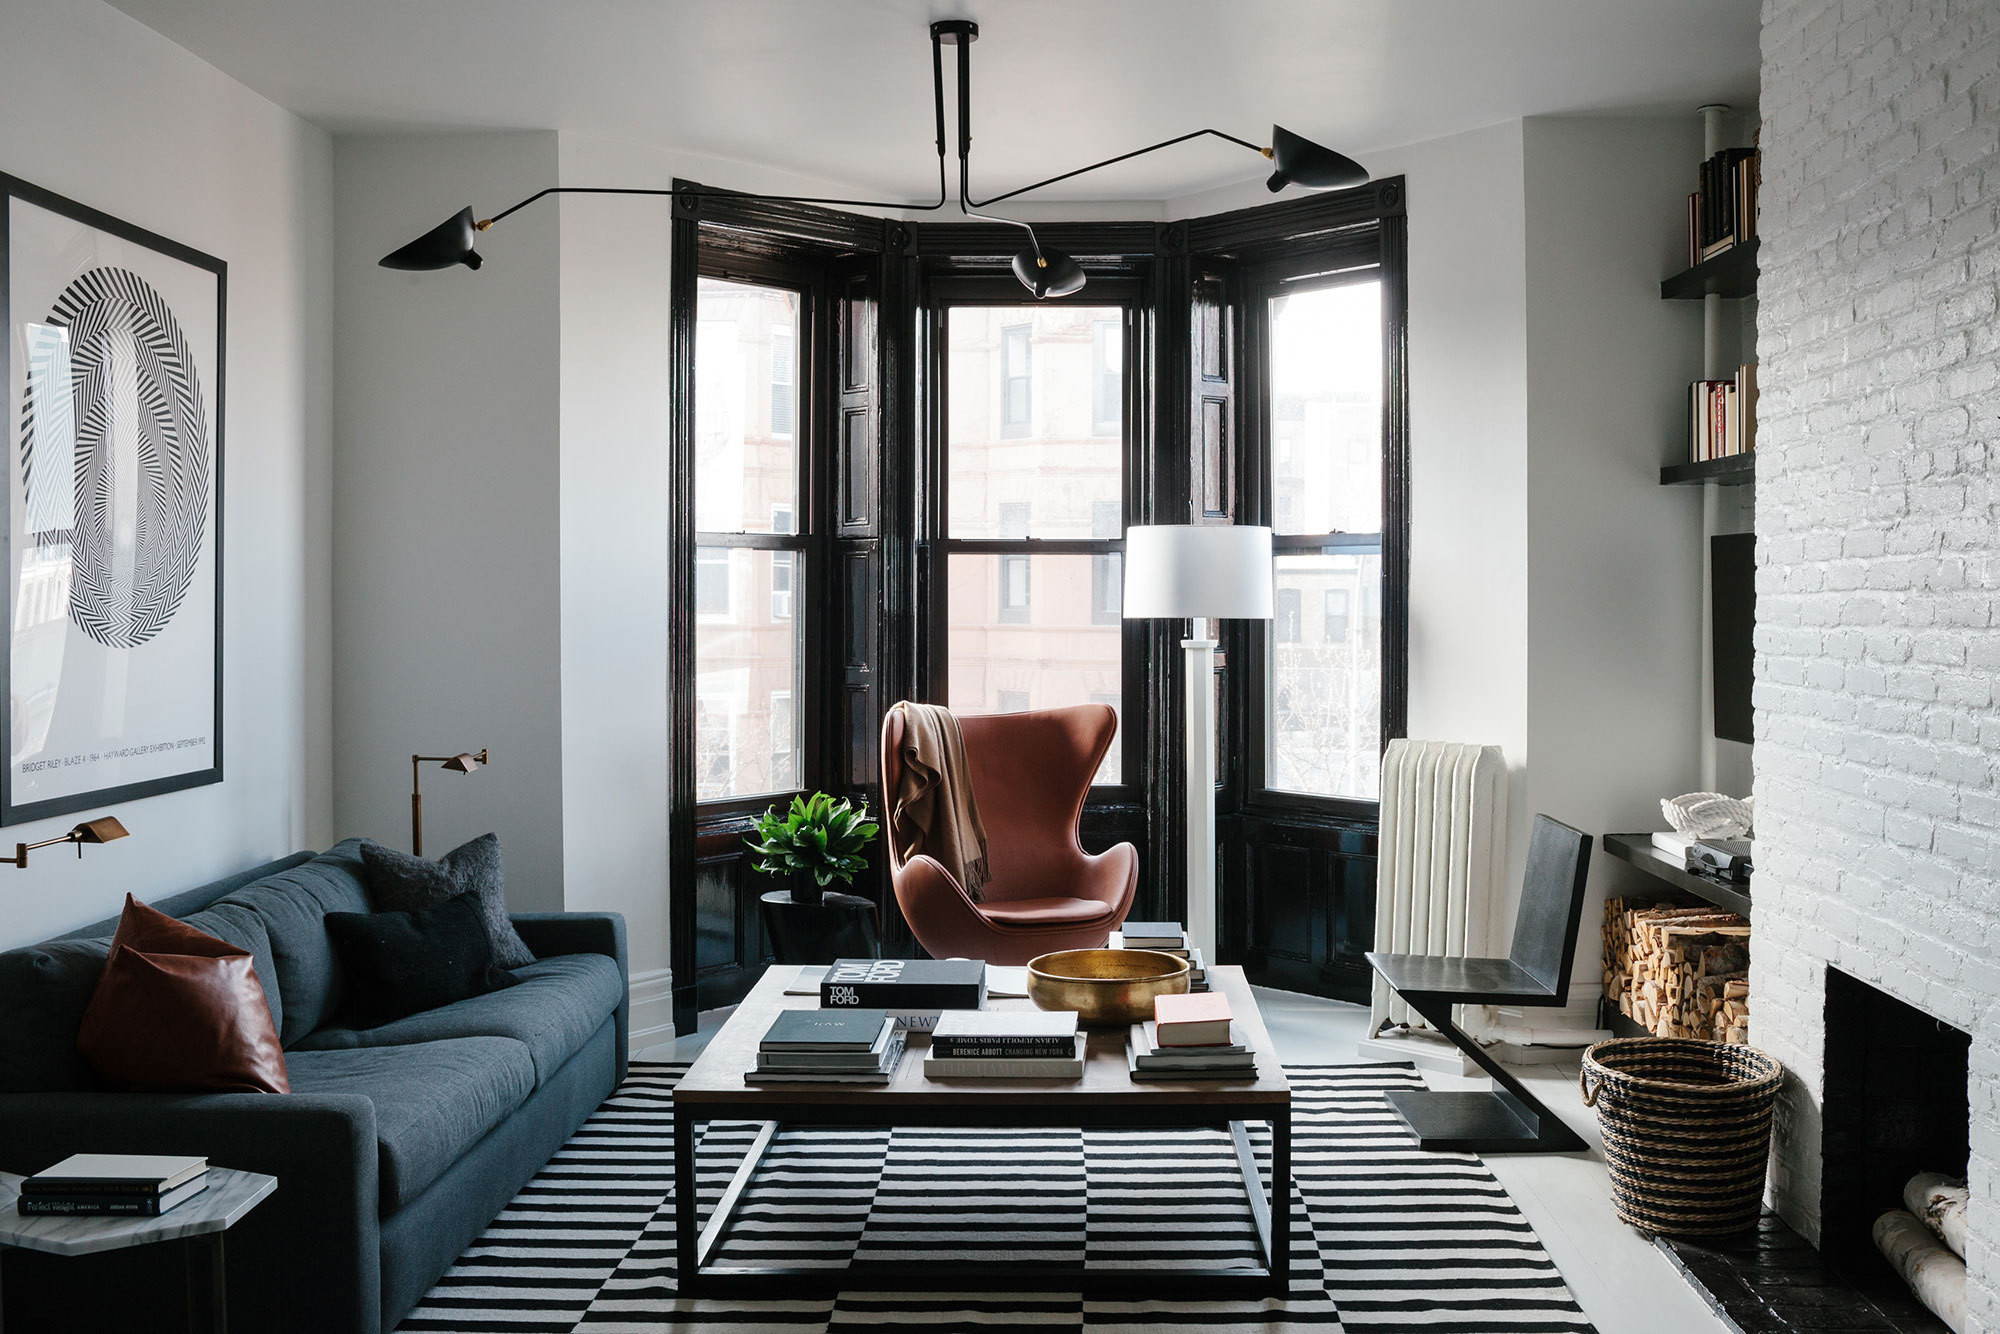 This Modern Contemporary Black And White Living Room By BHDM Design Gets  Recreated For Less Copycatchic Luxe Living For Less Budget Home Decor And  Design, ...